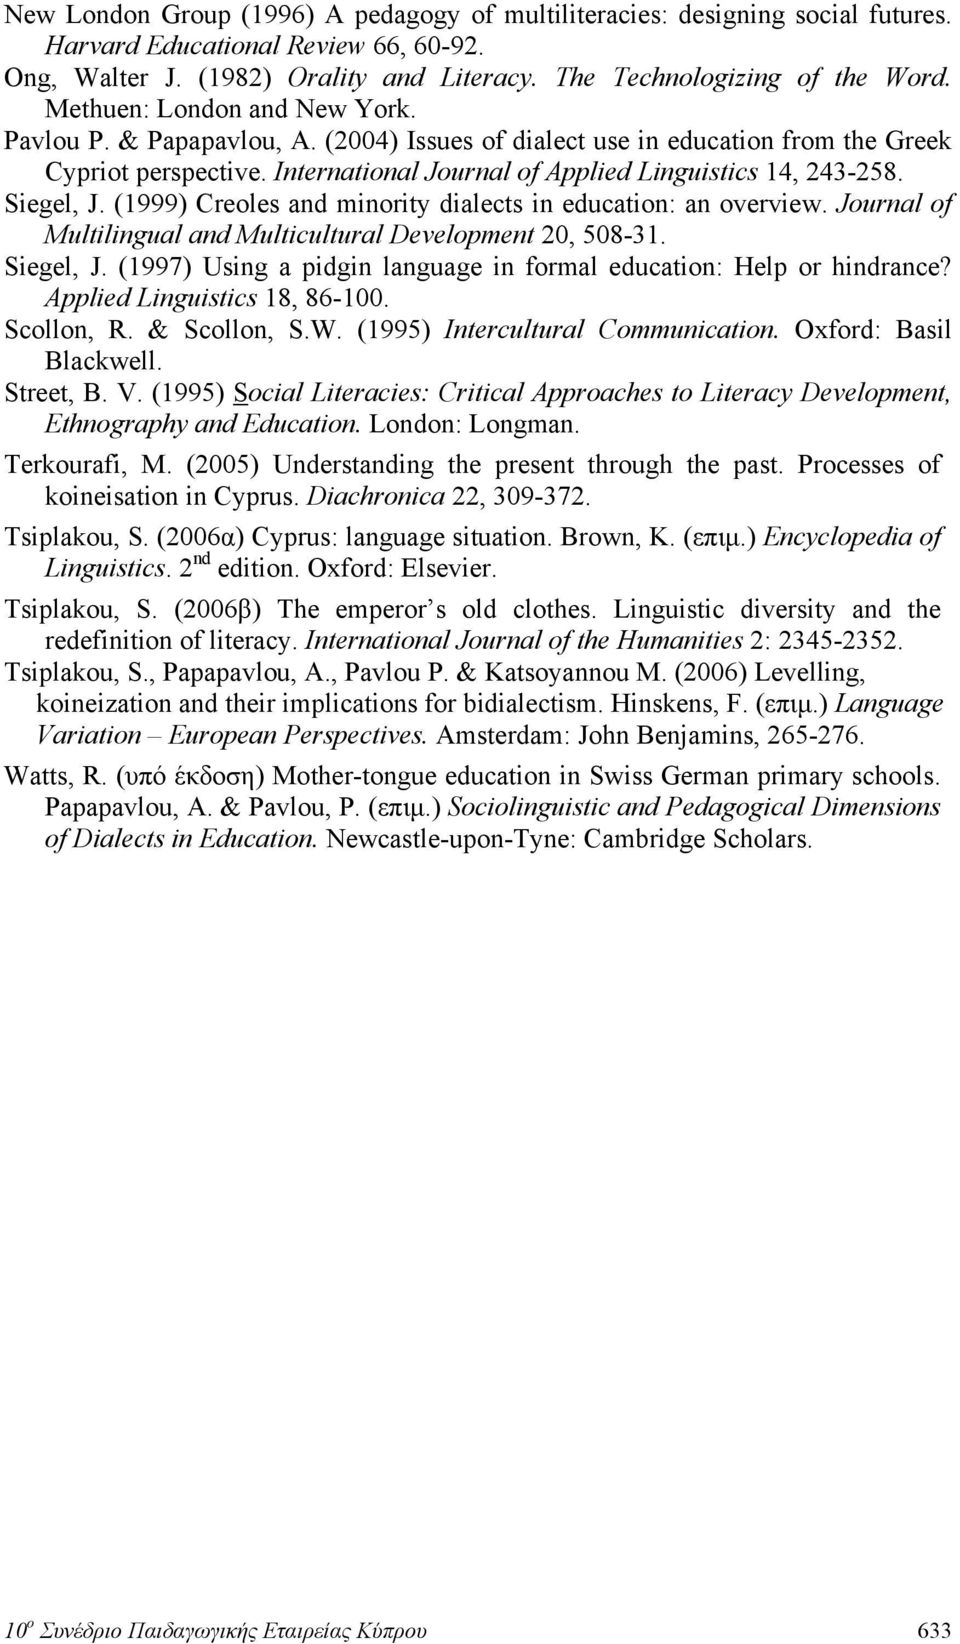 Siegel, J. (1999) Creoles and minority dialects in education: an overview. Journal of Multilingual and Multicultural Development 20, 508-31. Siegel, J.